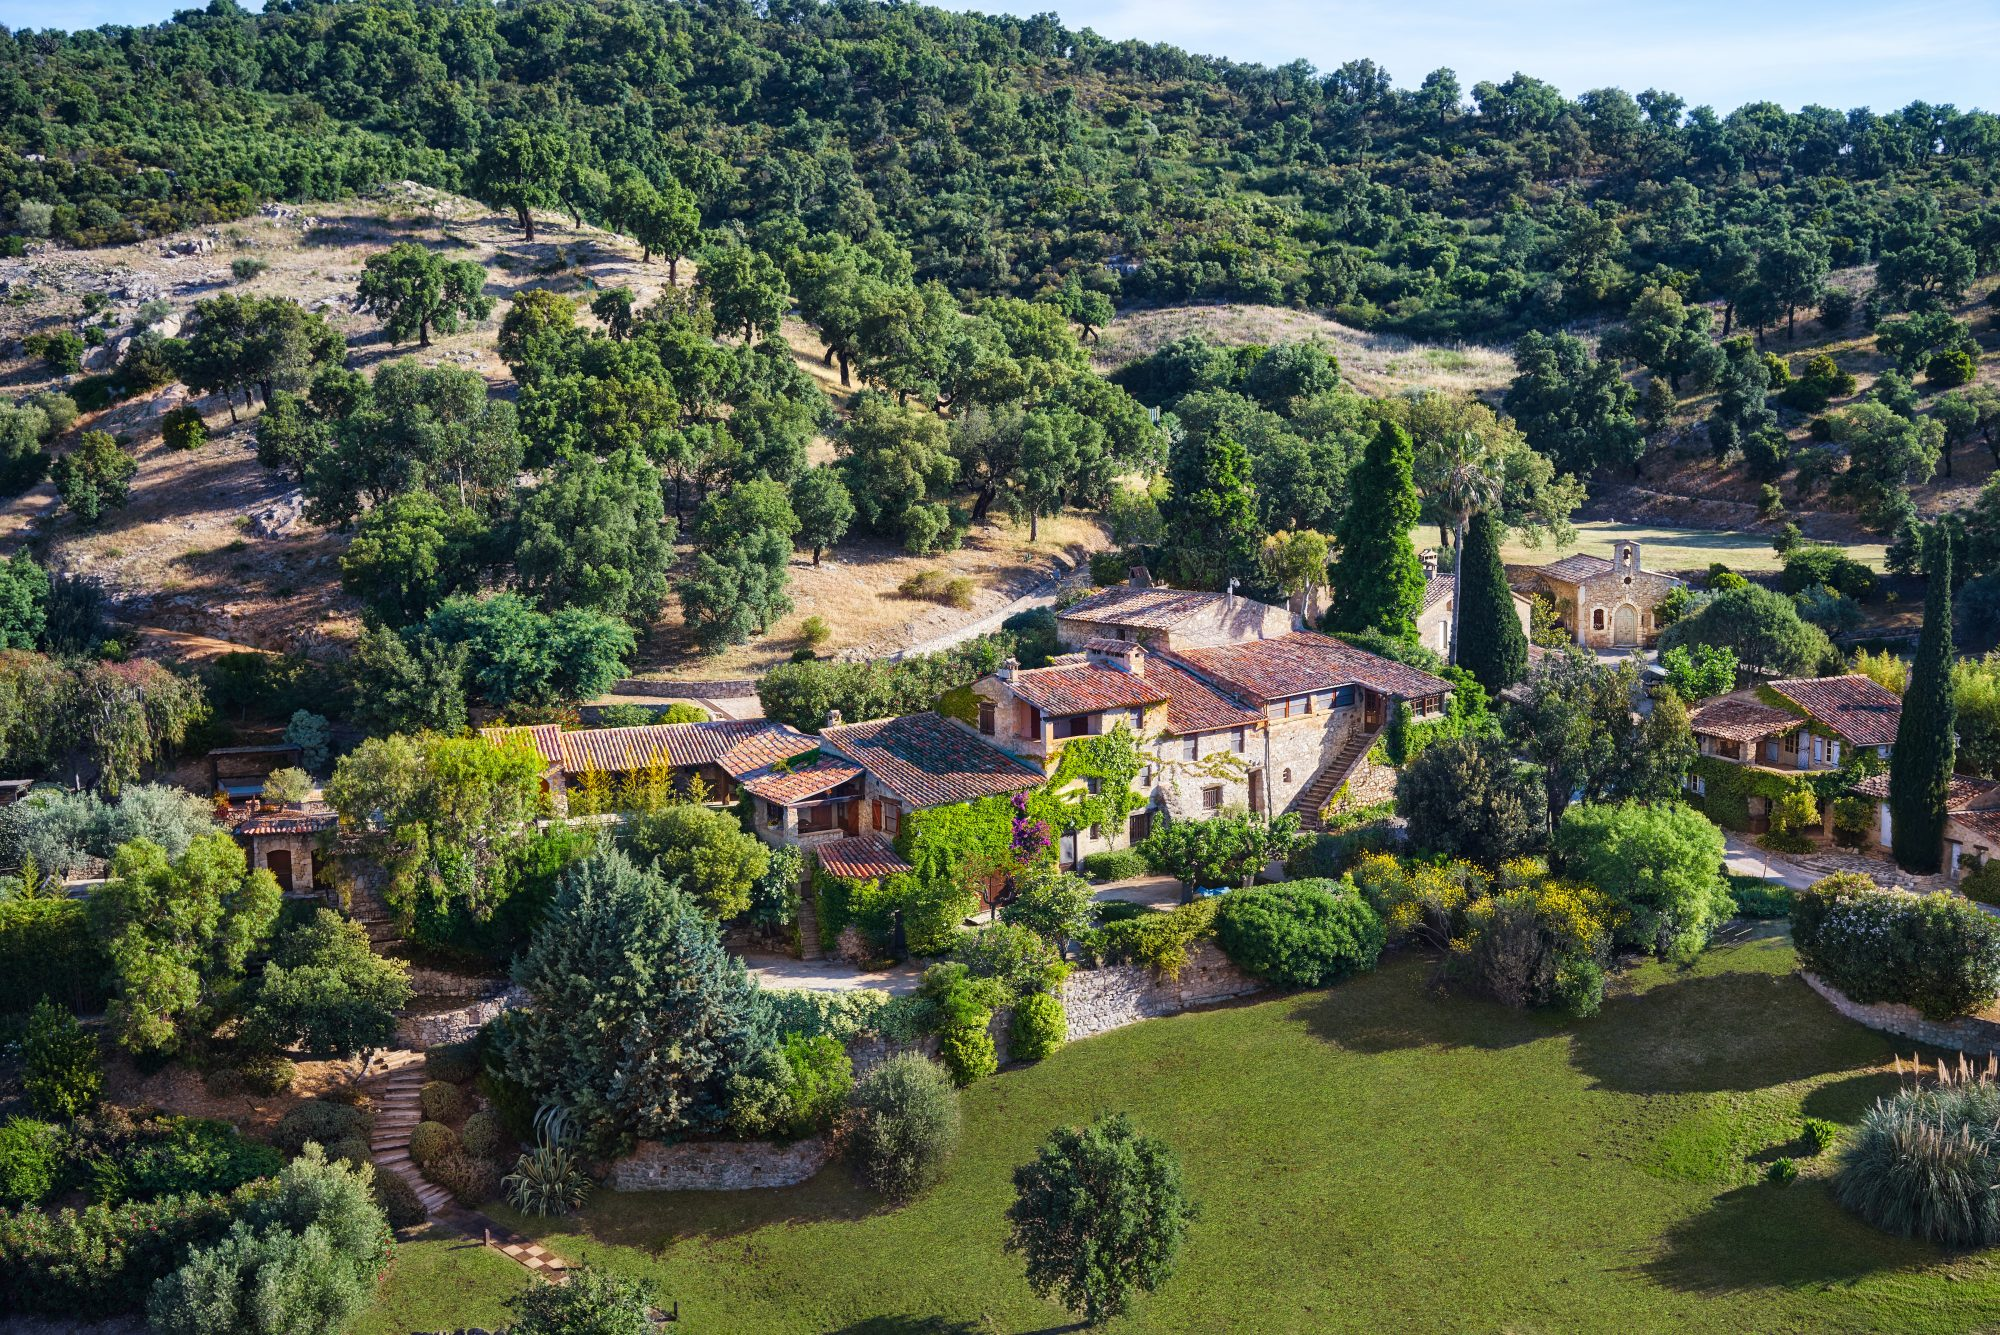 F:PHOTOMediaFactory ActionsRequests DropBox43898#sothebysSotheby's Int. Realty France Cote d'Azur - Johnny Depp estate arial village.jpg